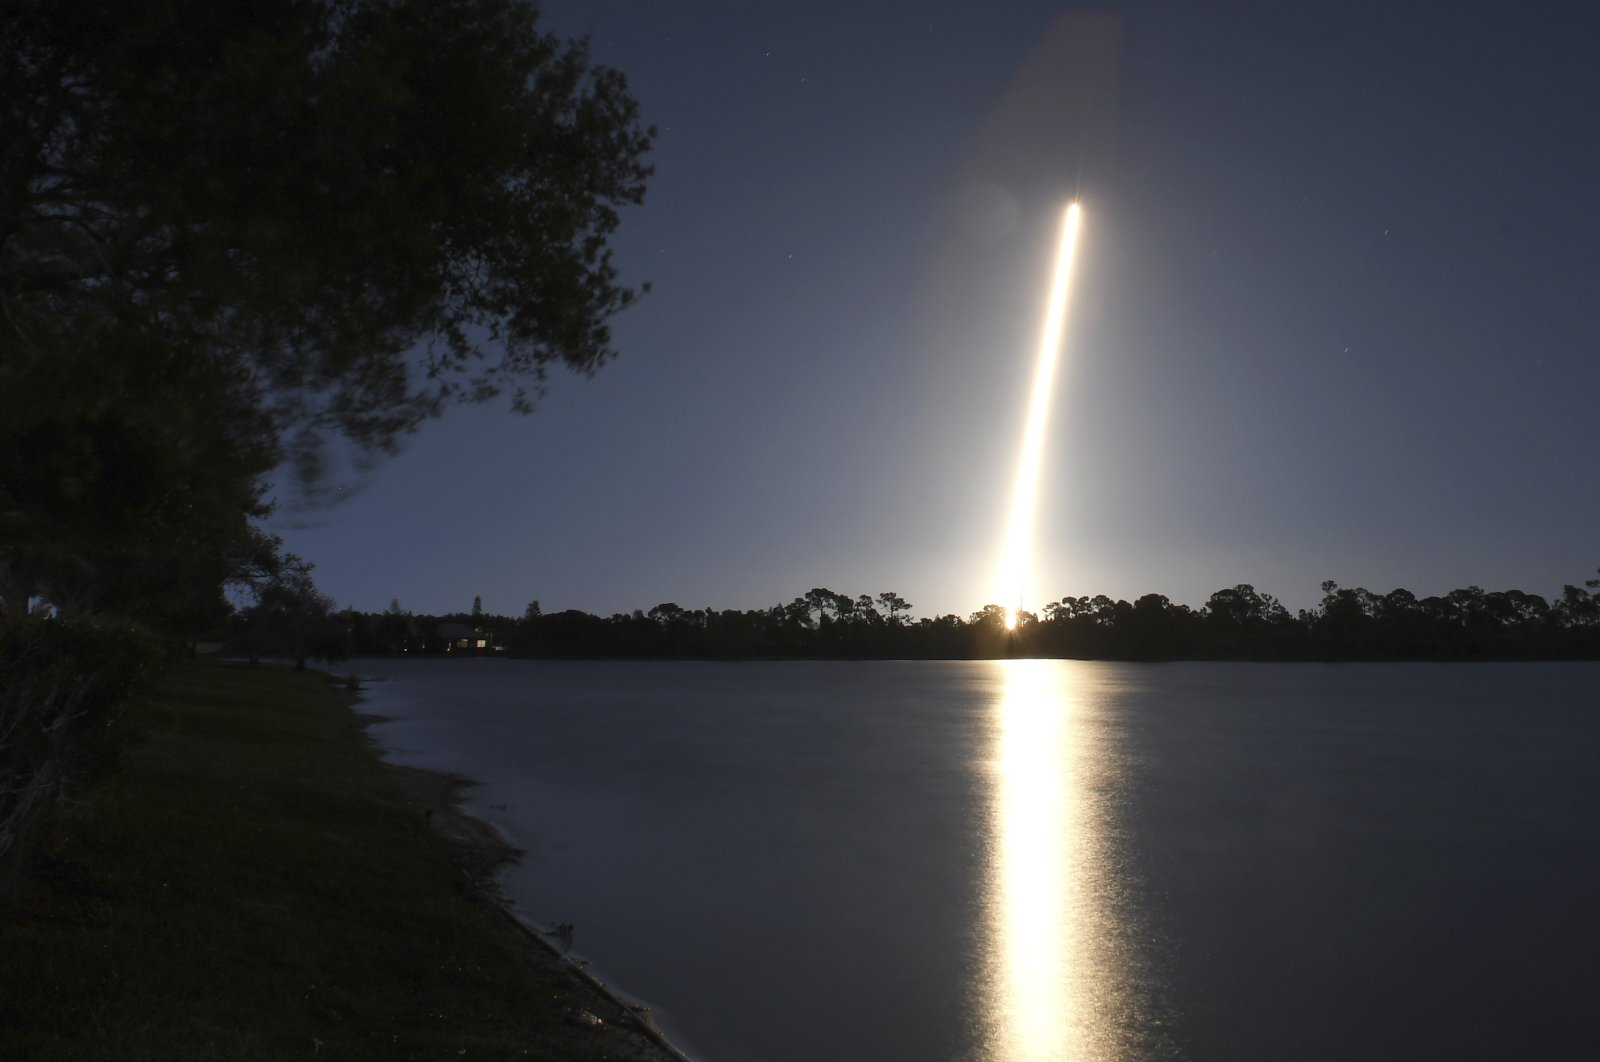 A time exposure from Viera, Fla., shows the launch of a SpaceX Falcon from Cape Canaveral, Fla., Friday night, March 6, 2020. (AP Photo)